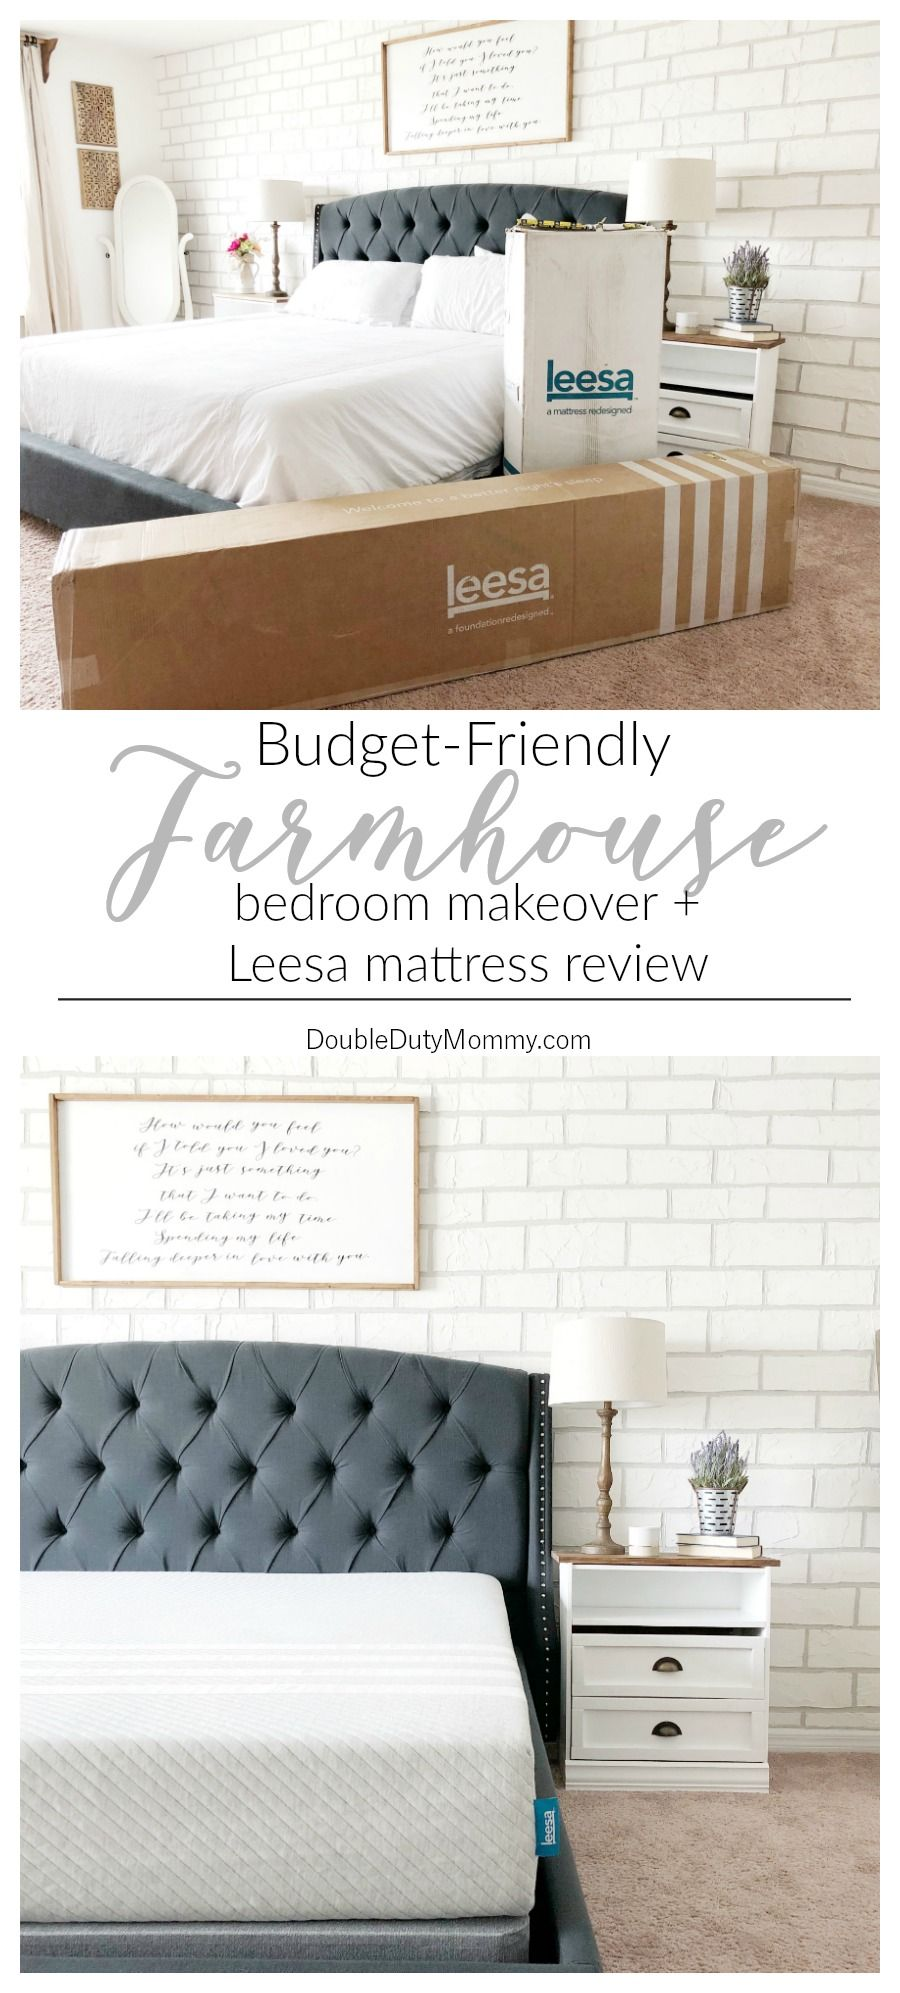 Buy Leesa Con A Leesa Mattress Review You Ll Want To Read Right Now Homeowners